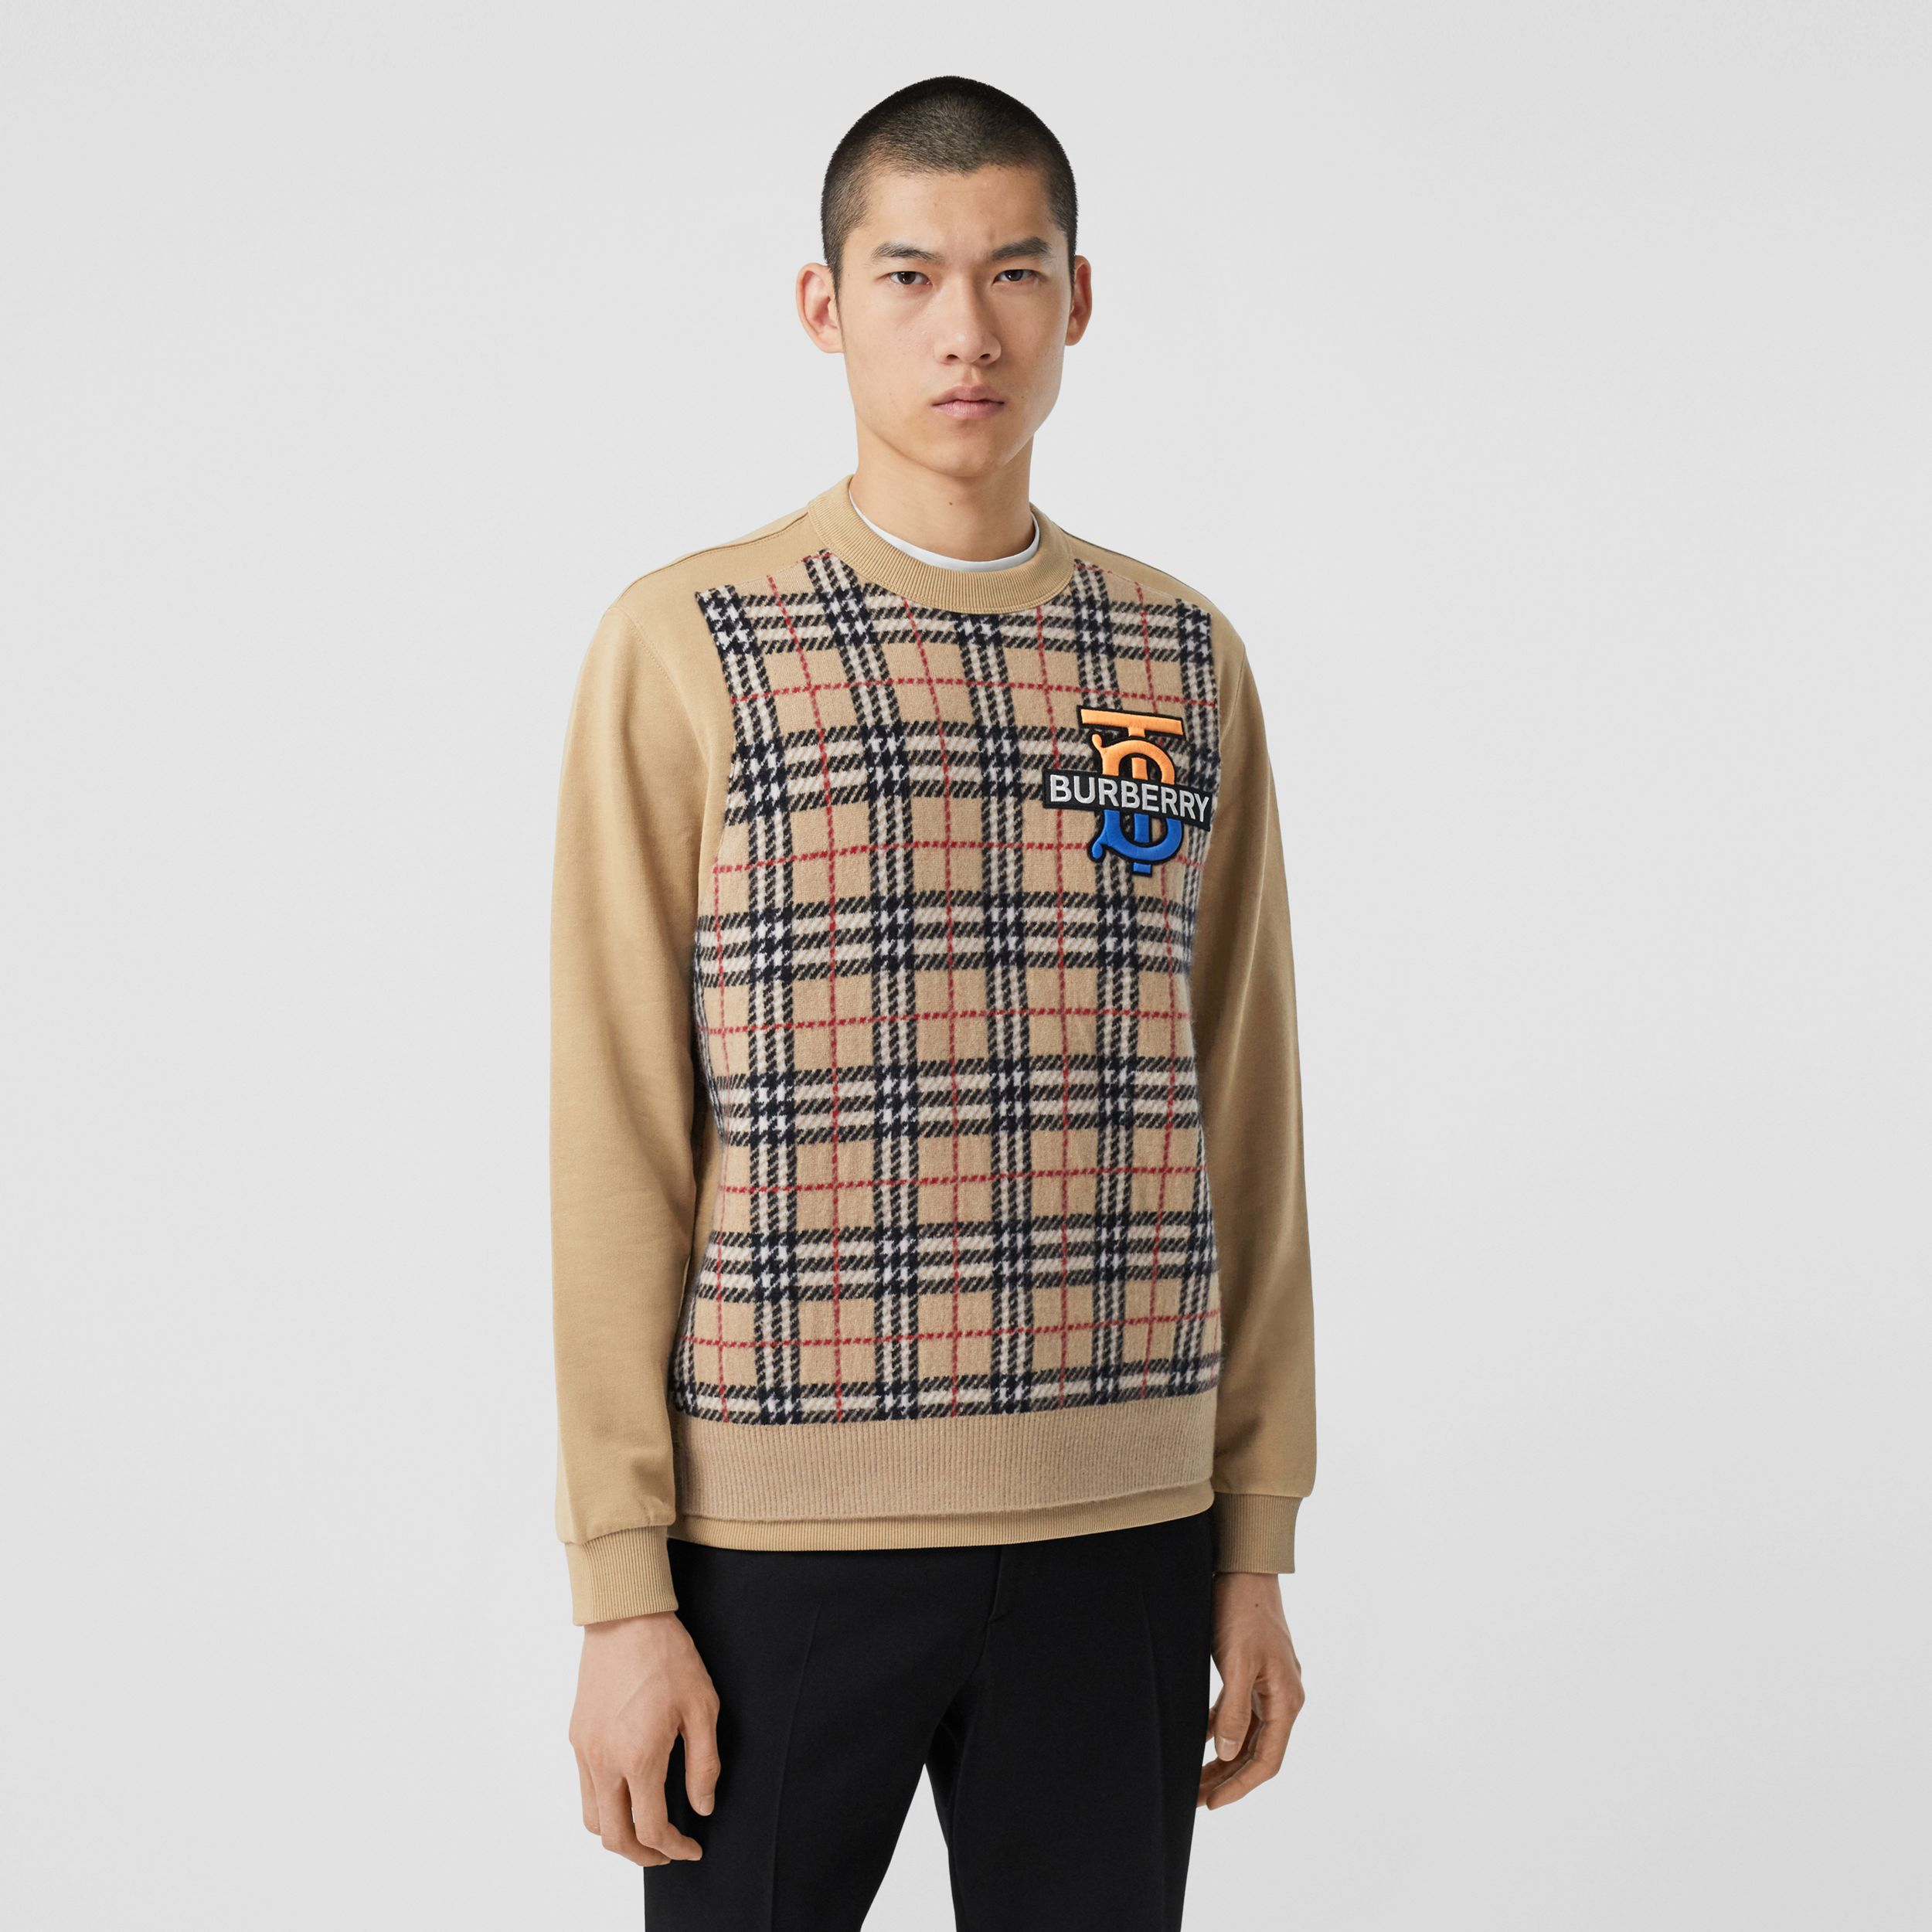 Monogram Motif Check Cashmere Panel Sweatshirt in Archive Beige - Men | Burberry United Kingdom - 1